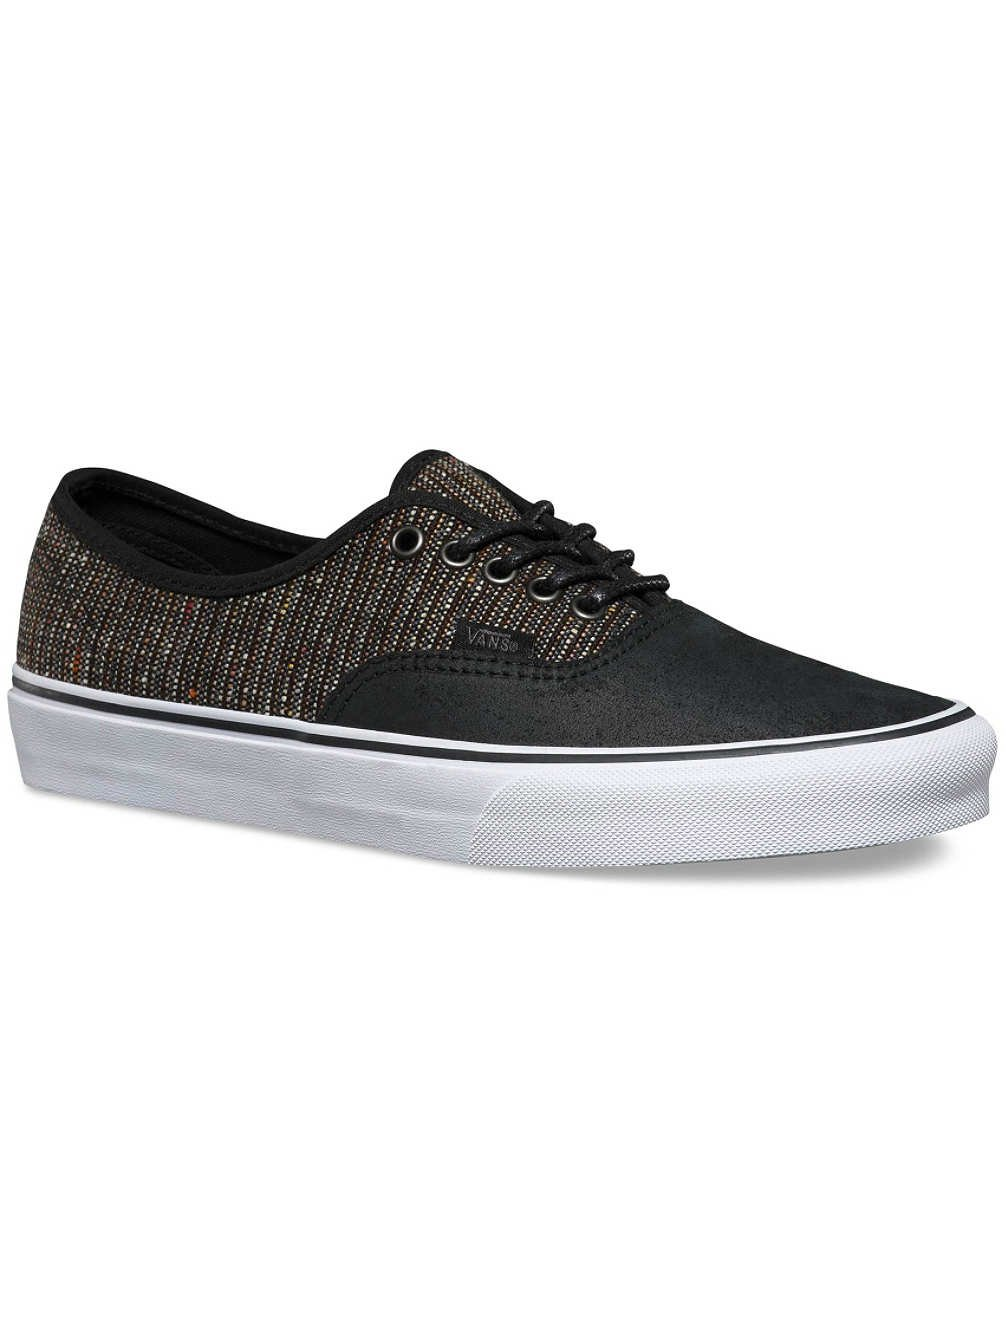 Vans Unisex-Erwachsene Authentic Low-Top  11.5|(2 Tone) Black/Tweed